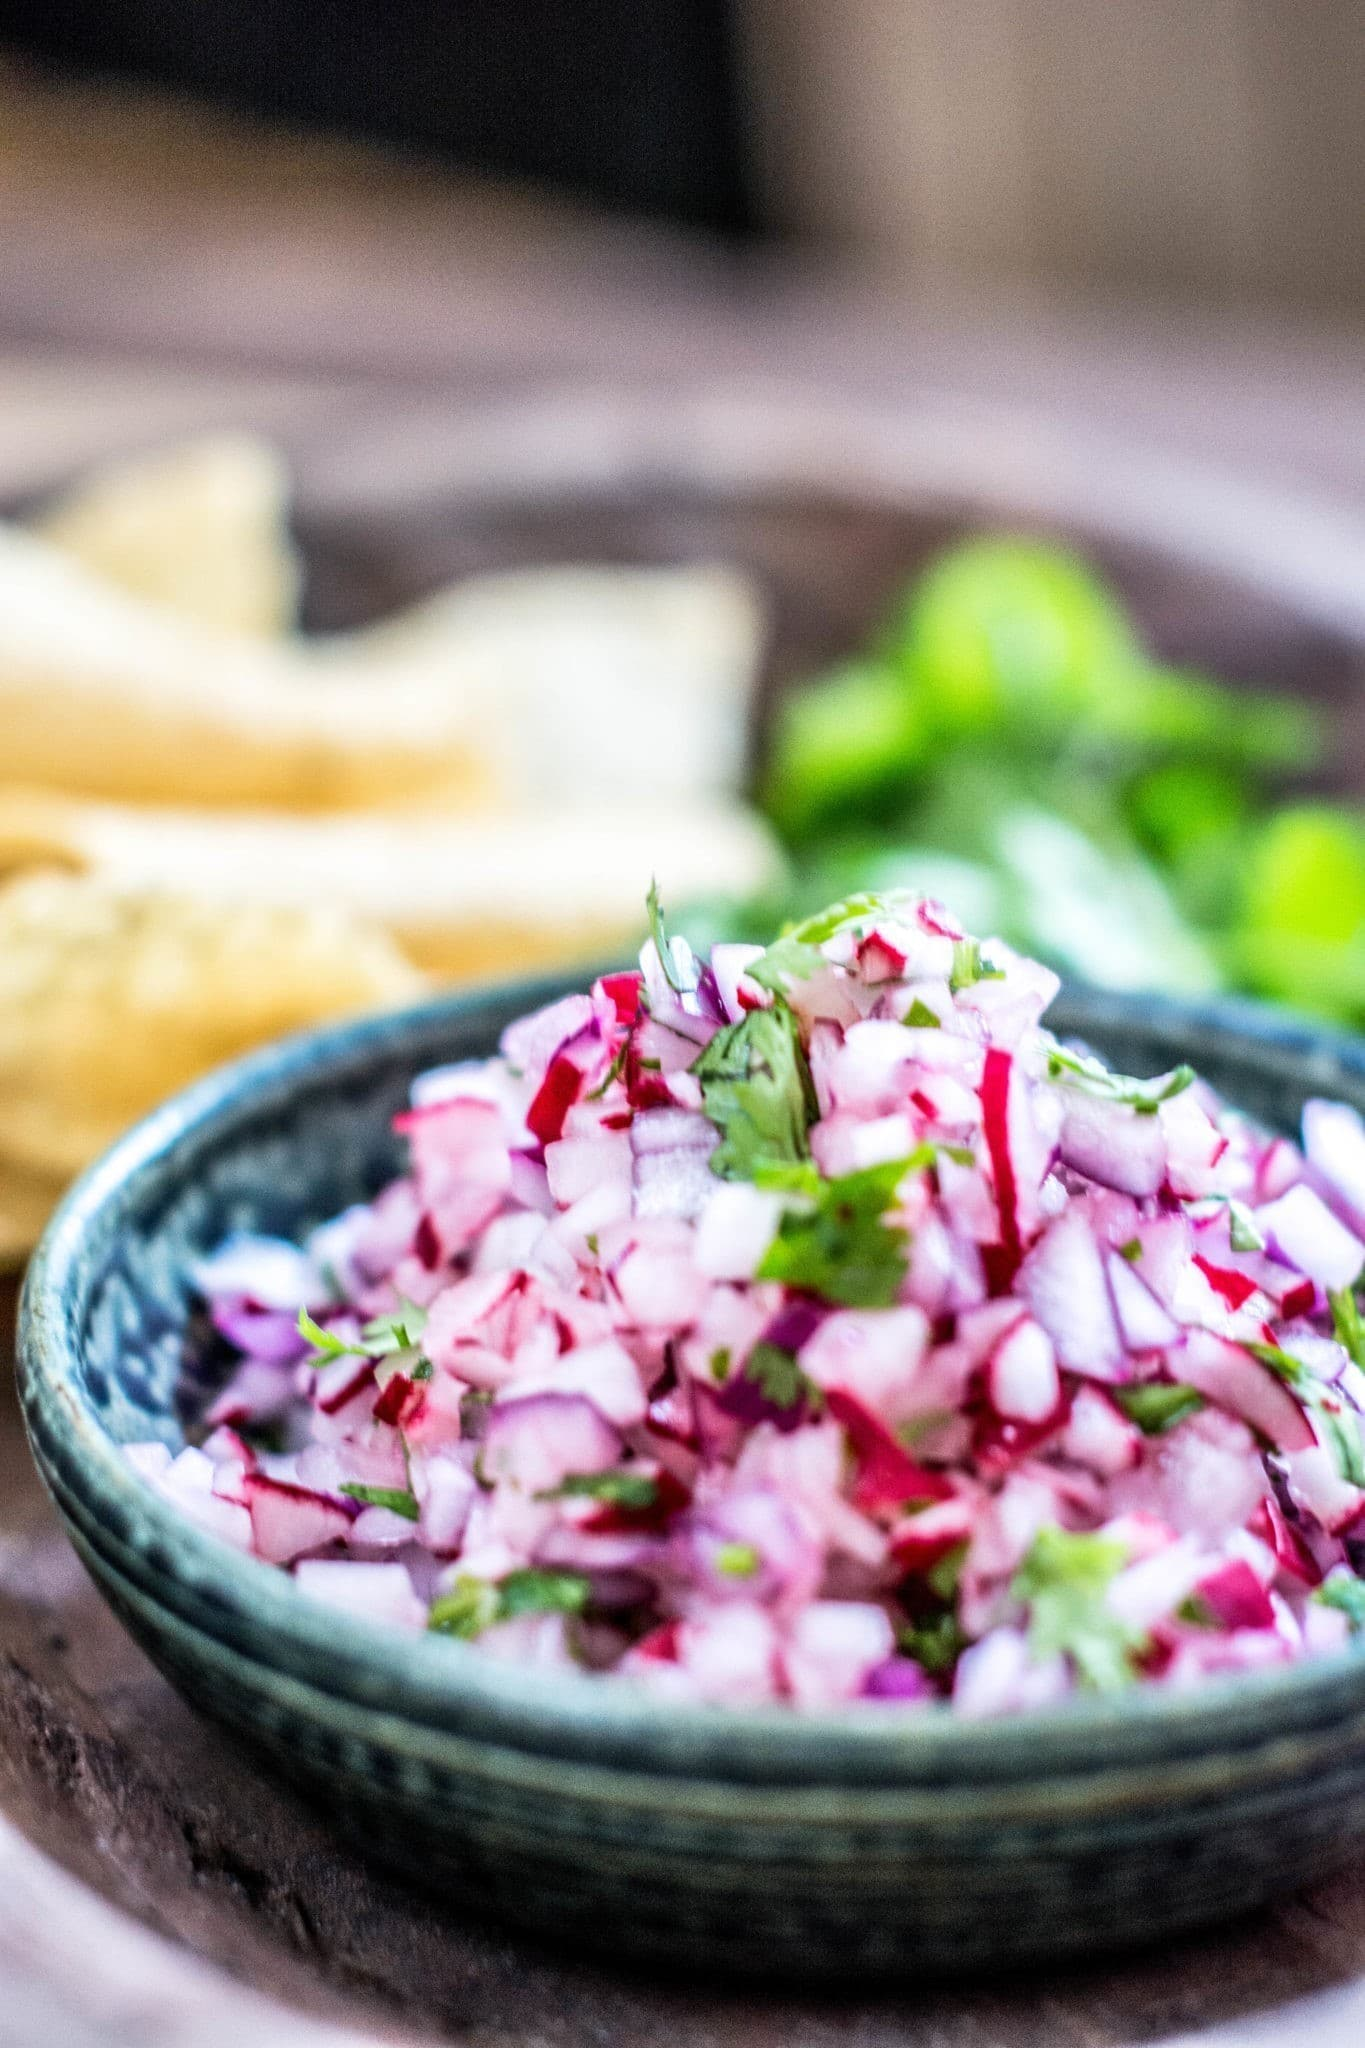 It's so easy to make and has an amazing flavor, Radish Pico de Gallo! Get the salsa recipe from Little Figgy Food